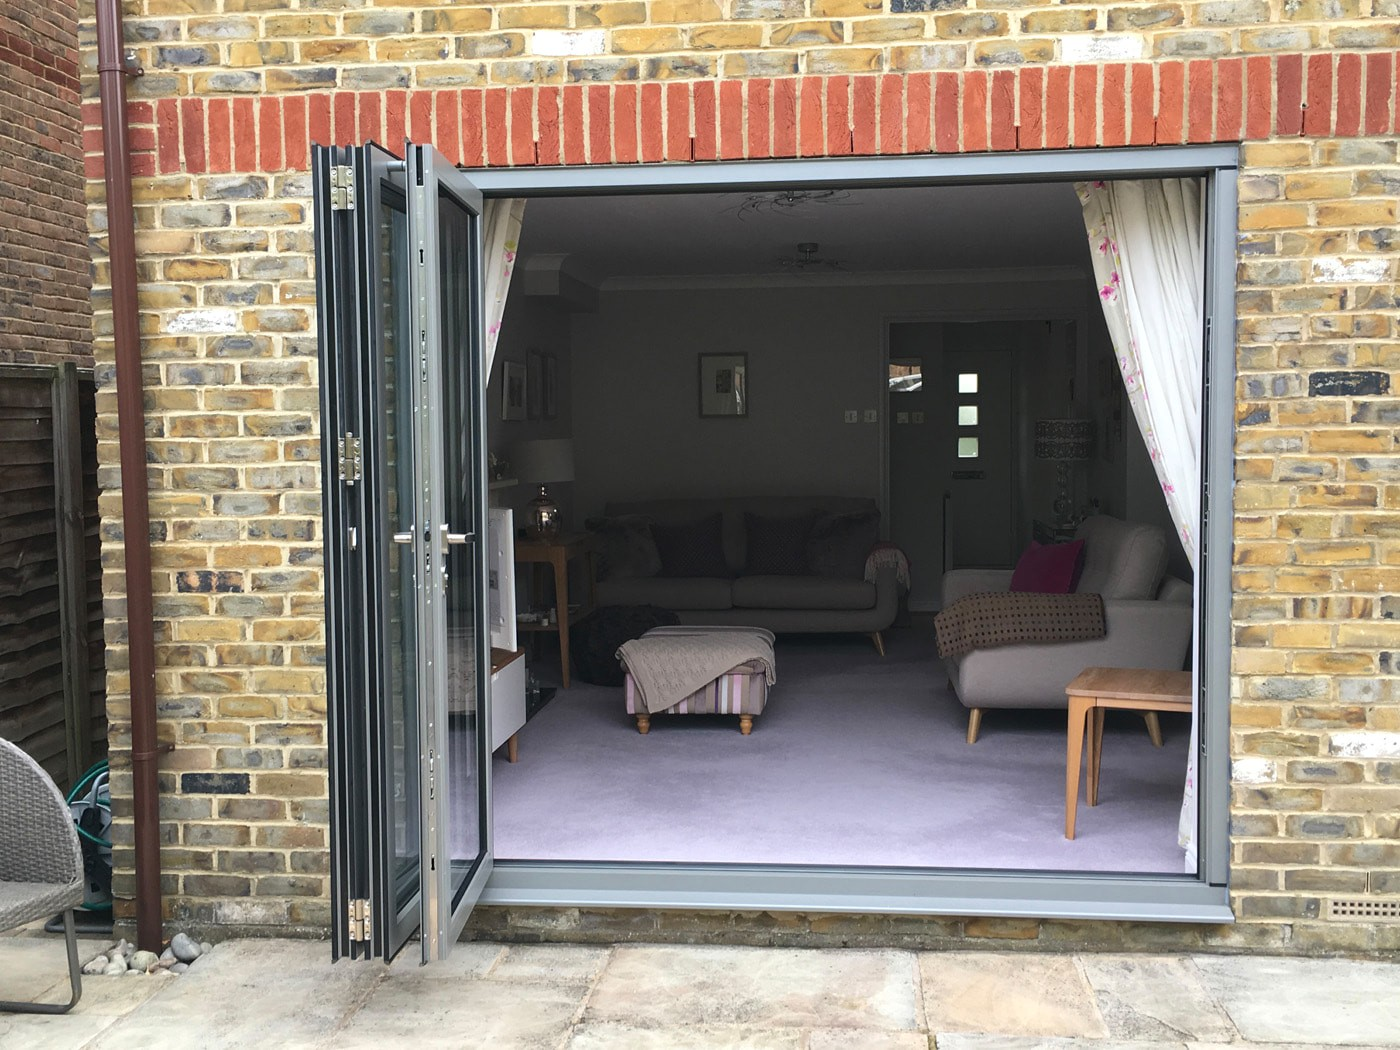 Hamiltons bifold installation team fitted Origin bifolds in Kingston